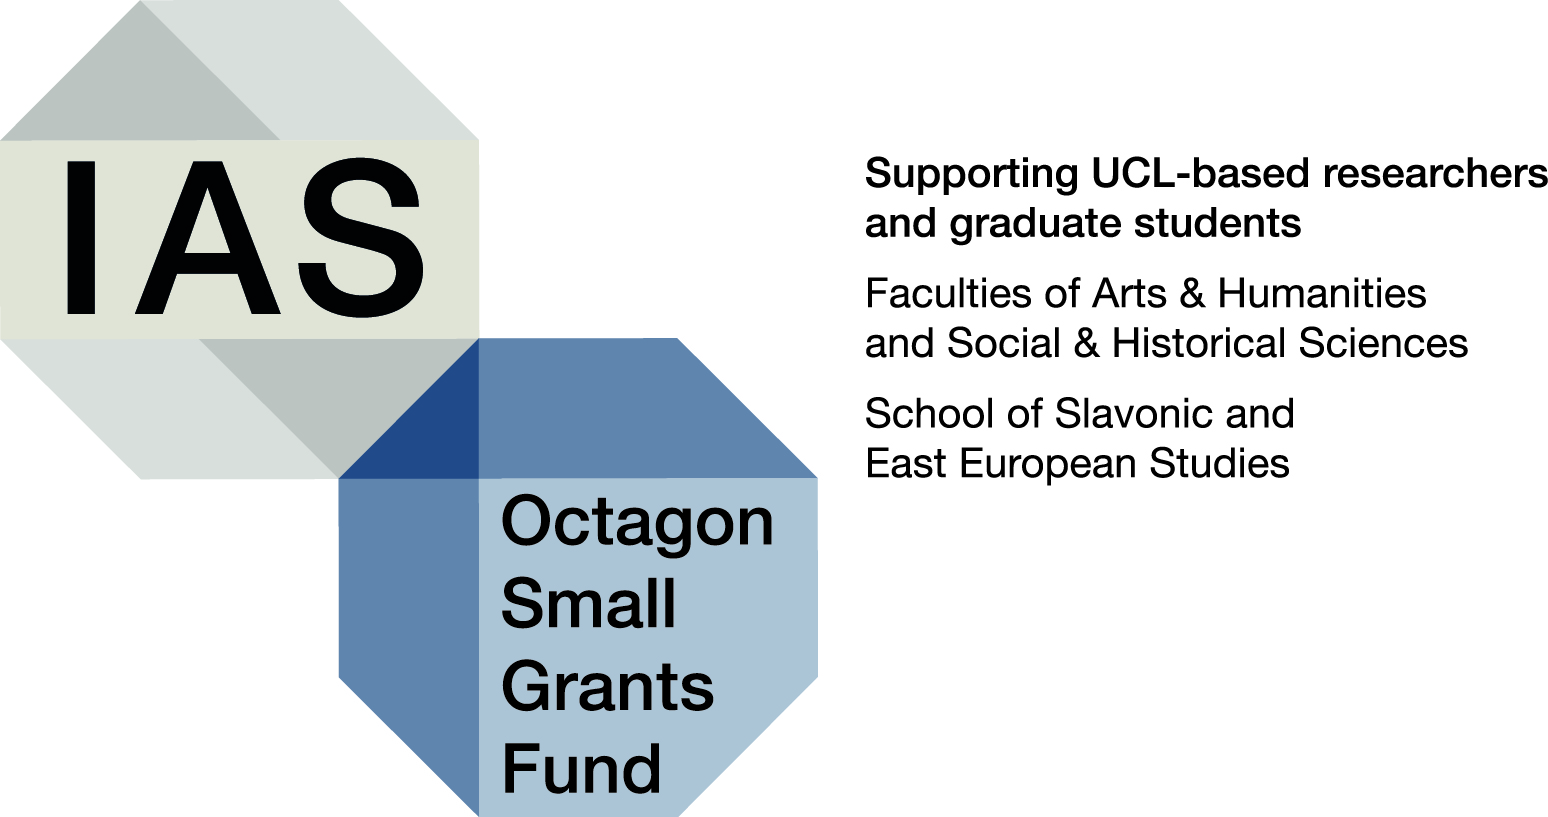 Octagon Small Grants